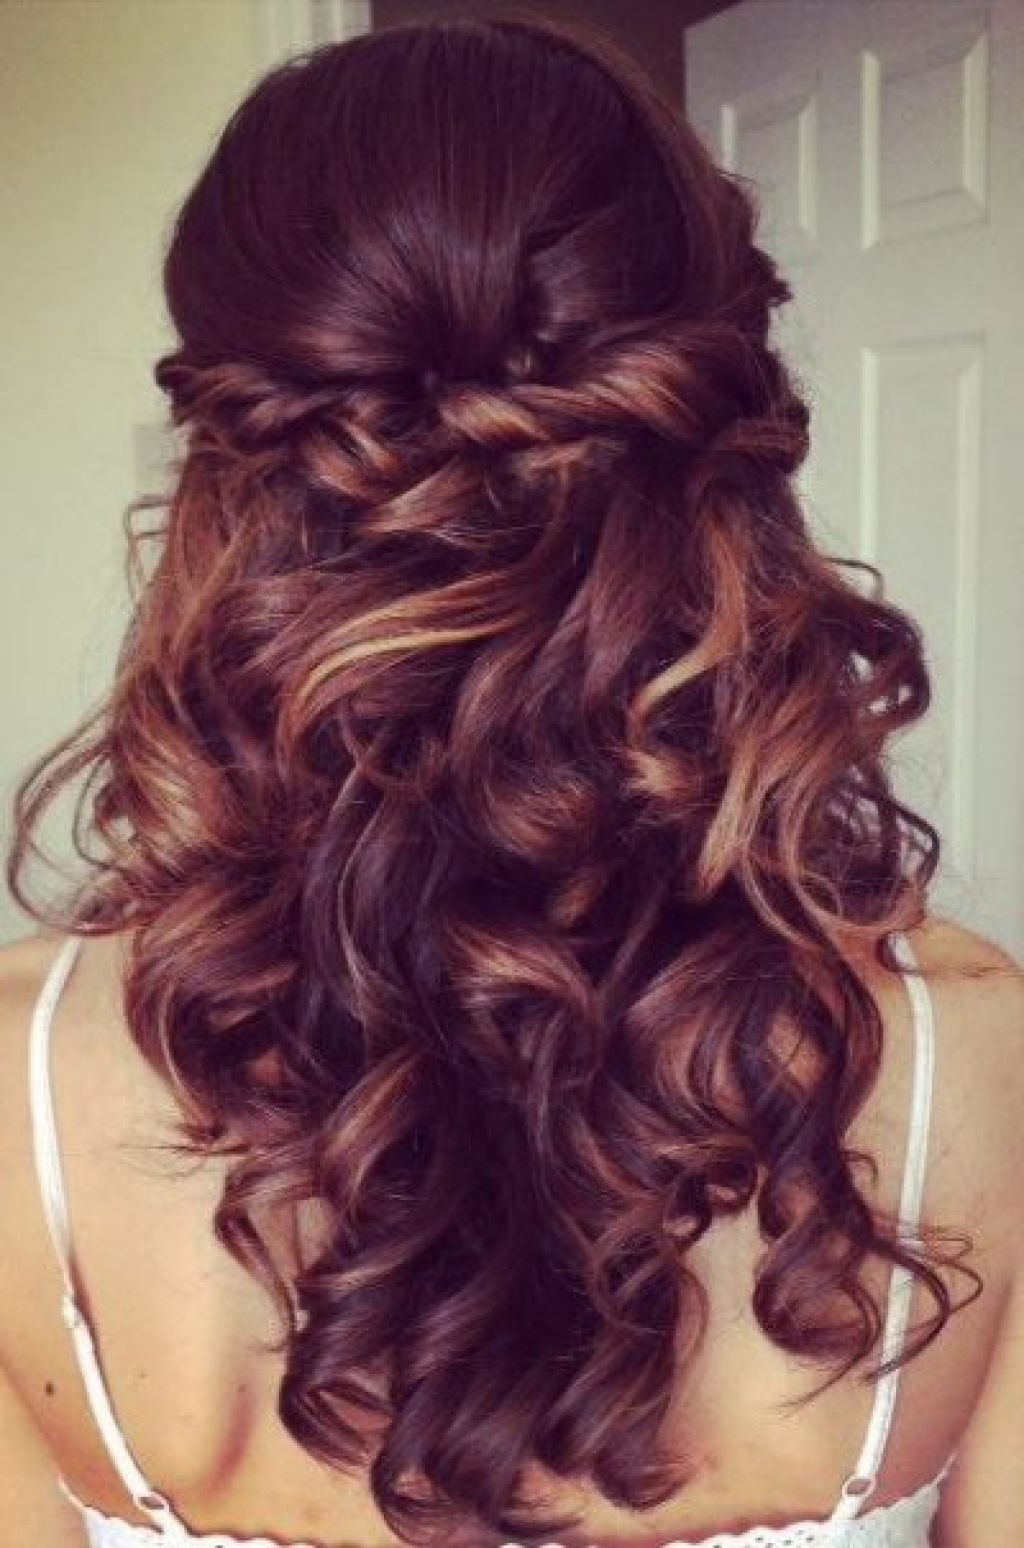 2020 Curled Half Up Hairstyles Inside Curly Hairstyle : Curly Hair Updo For Wedding Guest Short (View 19 of 20)